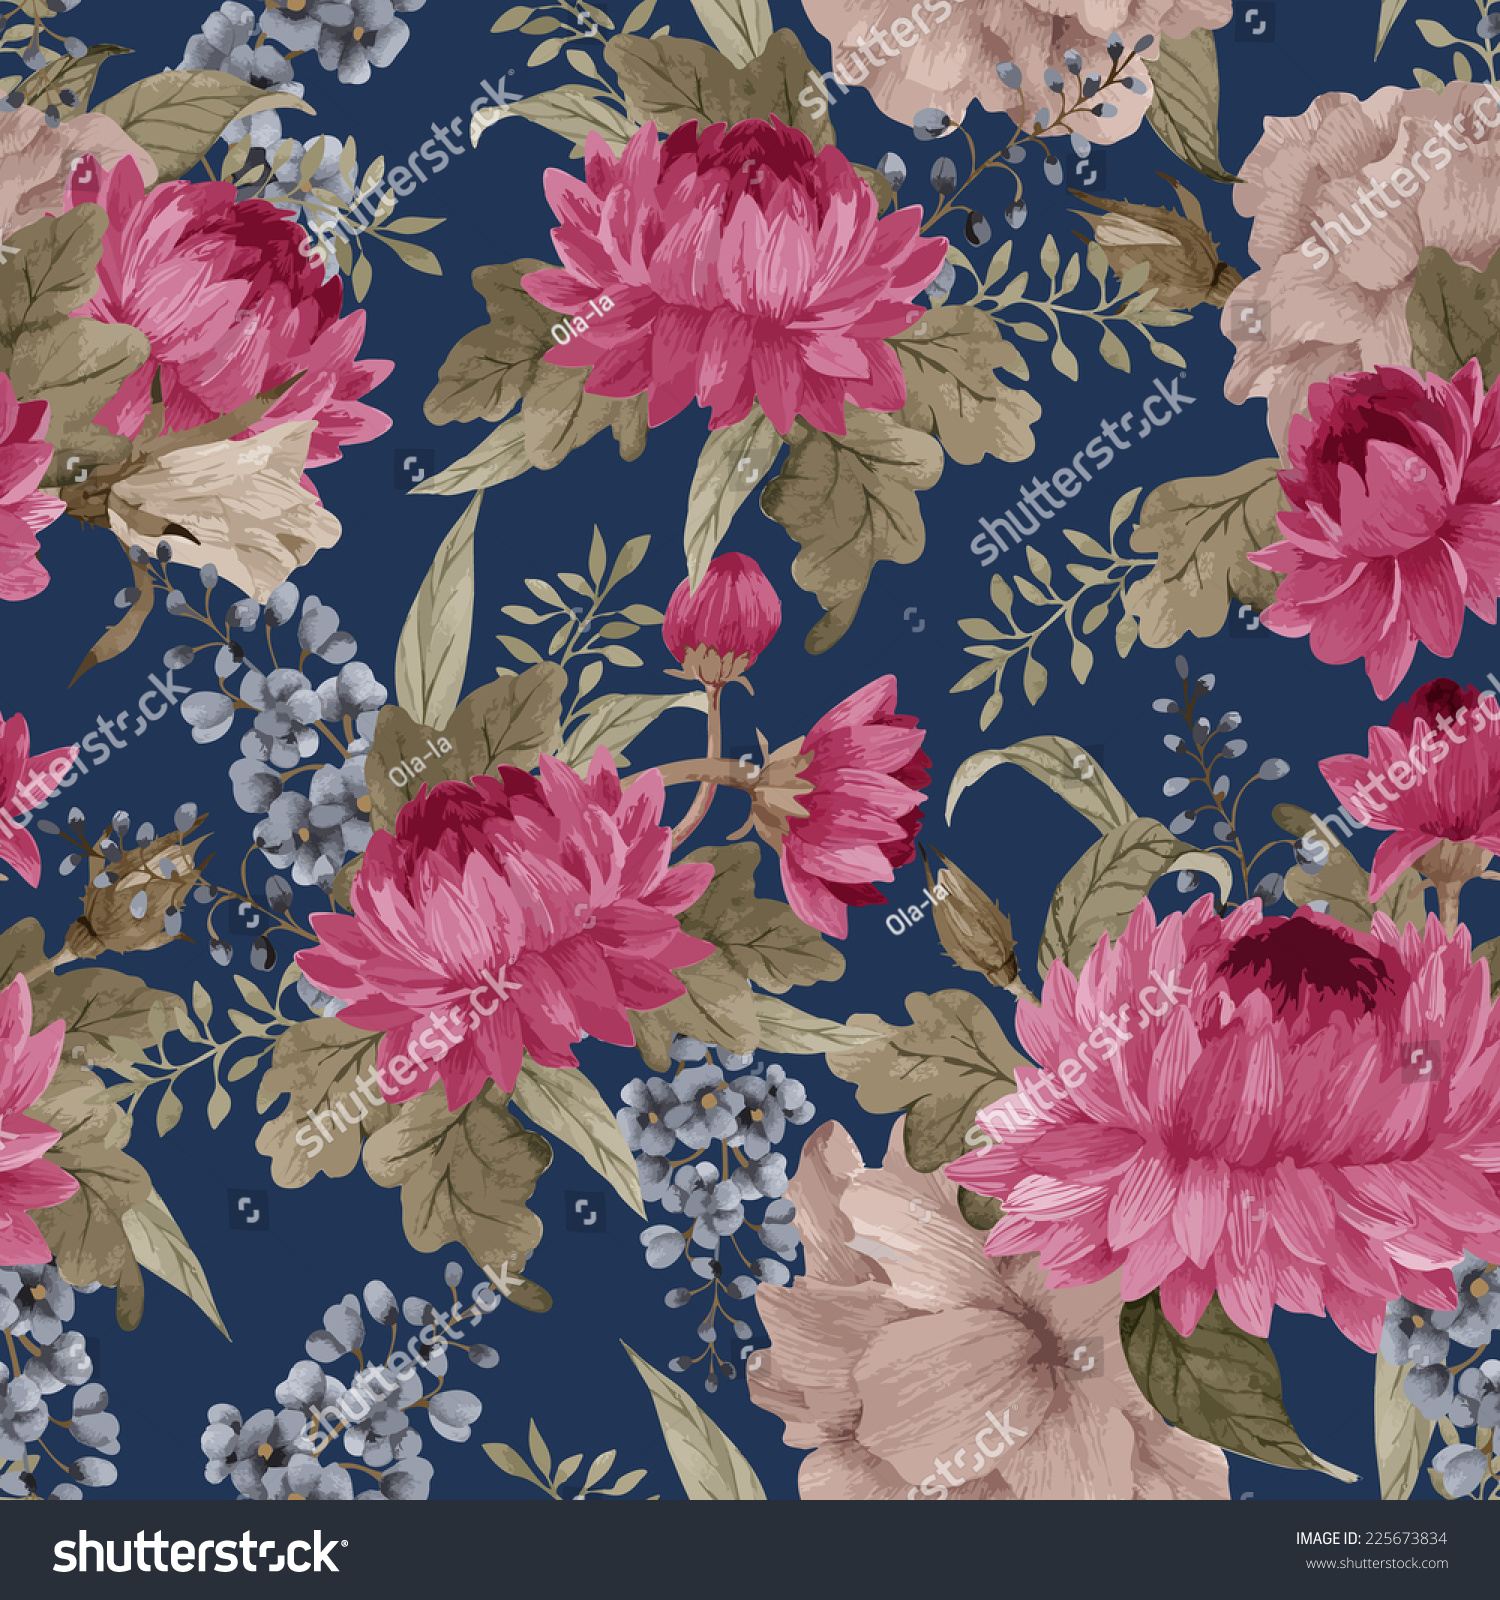 Pink floral seamless vector background floral hrysanthemum seamless - Seamless Floral Pattern With Roses Chrysanthemum And Delphinium Watercolor Vector Illustration